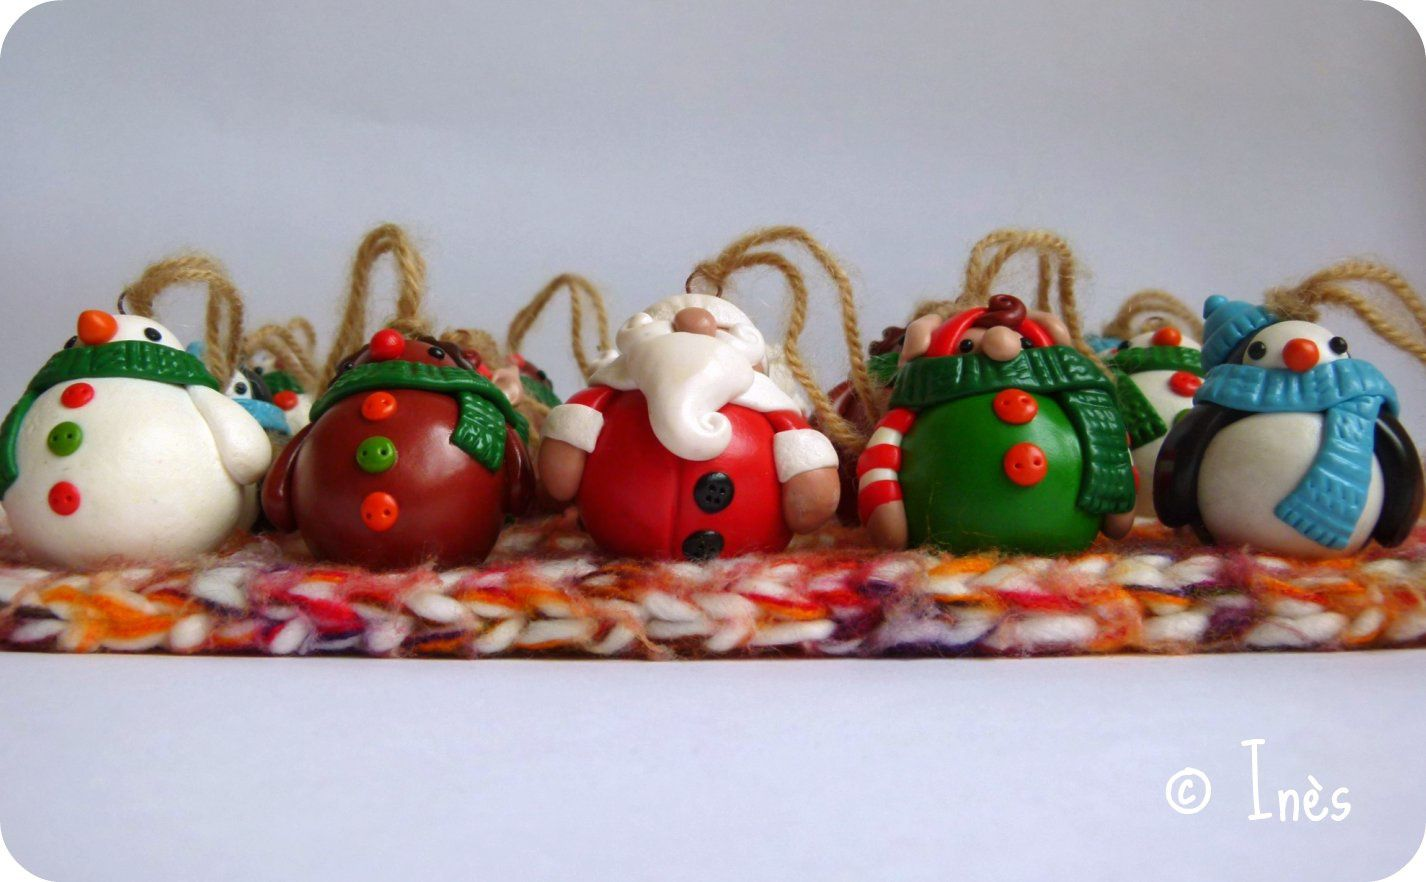 Christmas team gourmandises de no l collection no l 2012 passions cr ation passion scrap - Decoration noel pate fimo ...